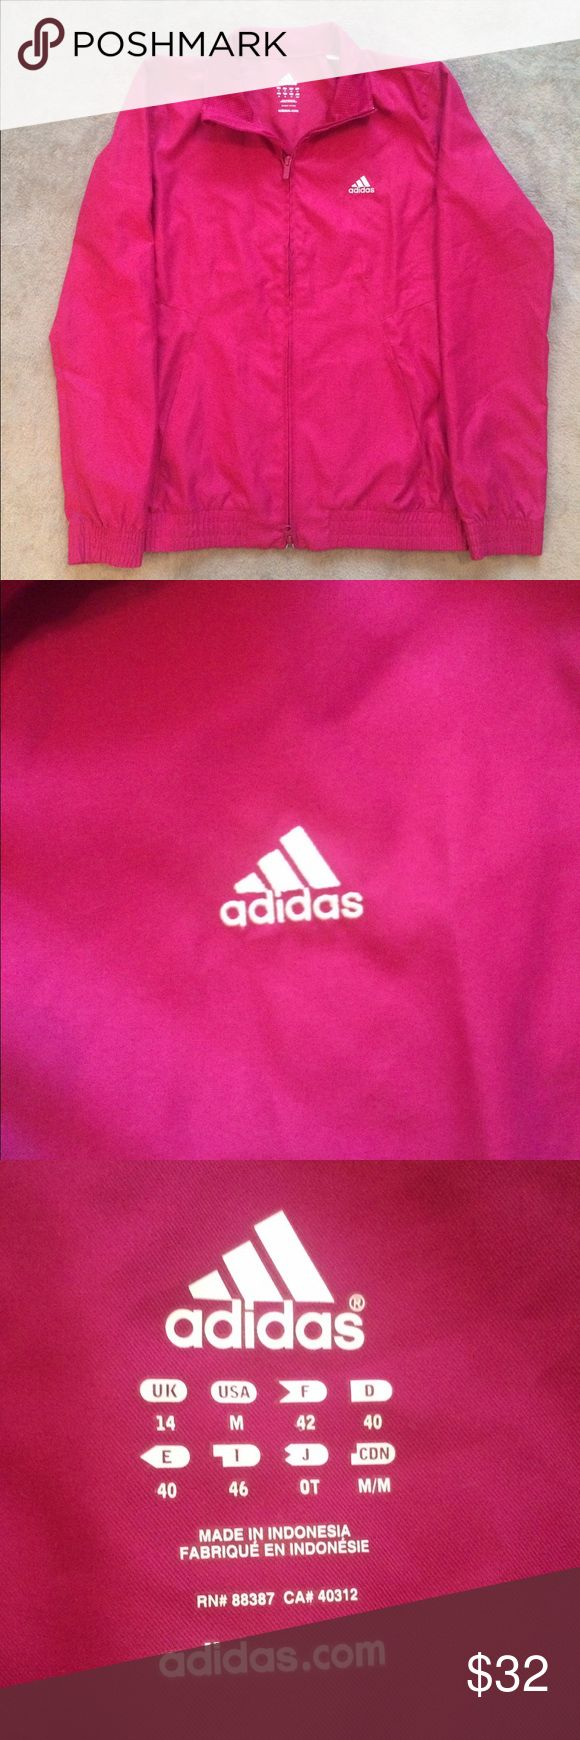 Women's Pink Adidas Track Jacket Women's Pink Adidas Track Jacket. Still in perfect condition, looks brand new! Perfect Jacket for the athletic look and the upcoming fall season! adidas Jackets & Coats